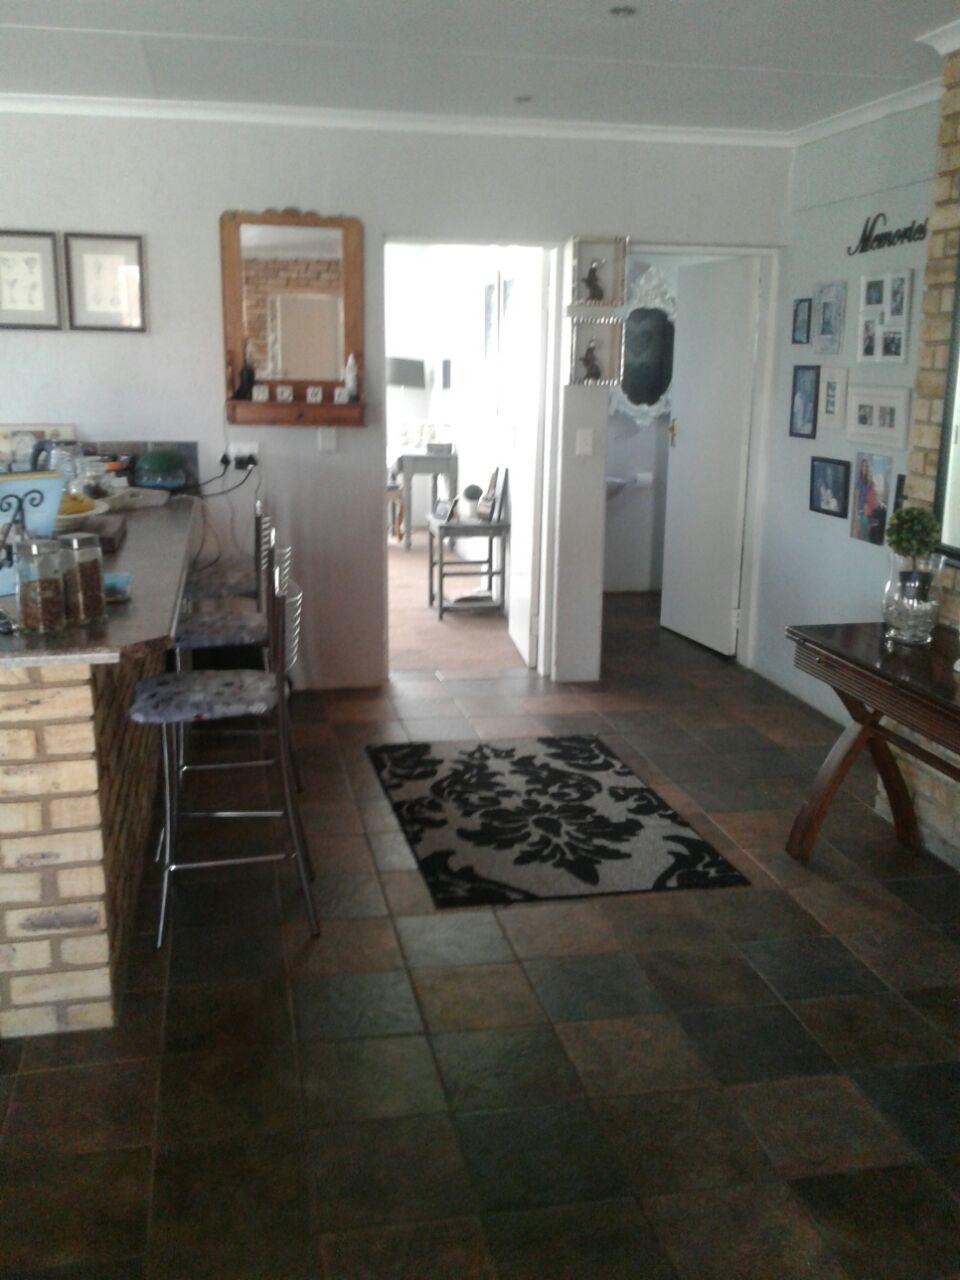 Krugersdorp. Beautiful. Spacious 2 Bedroom house to let. Safe. Central. Secure. Private. Very neat.